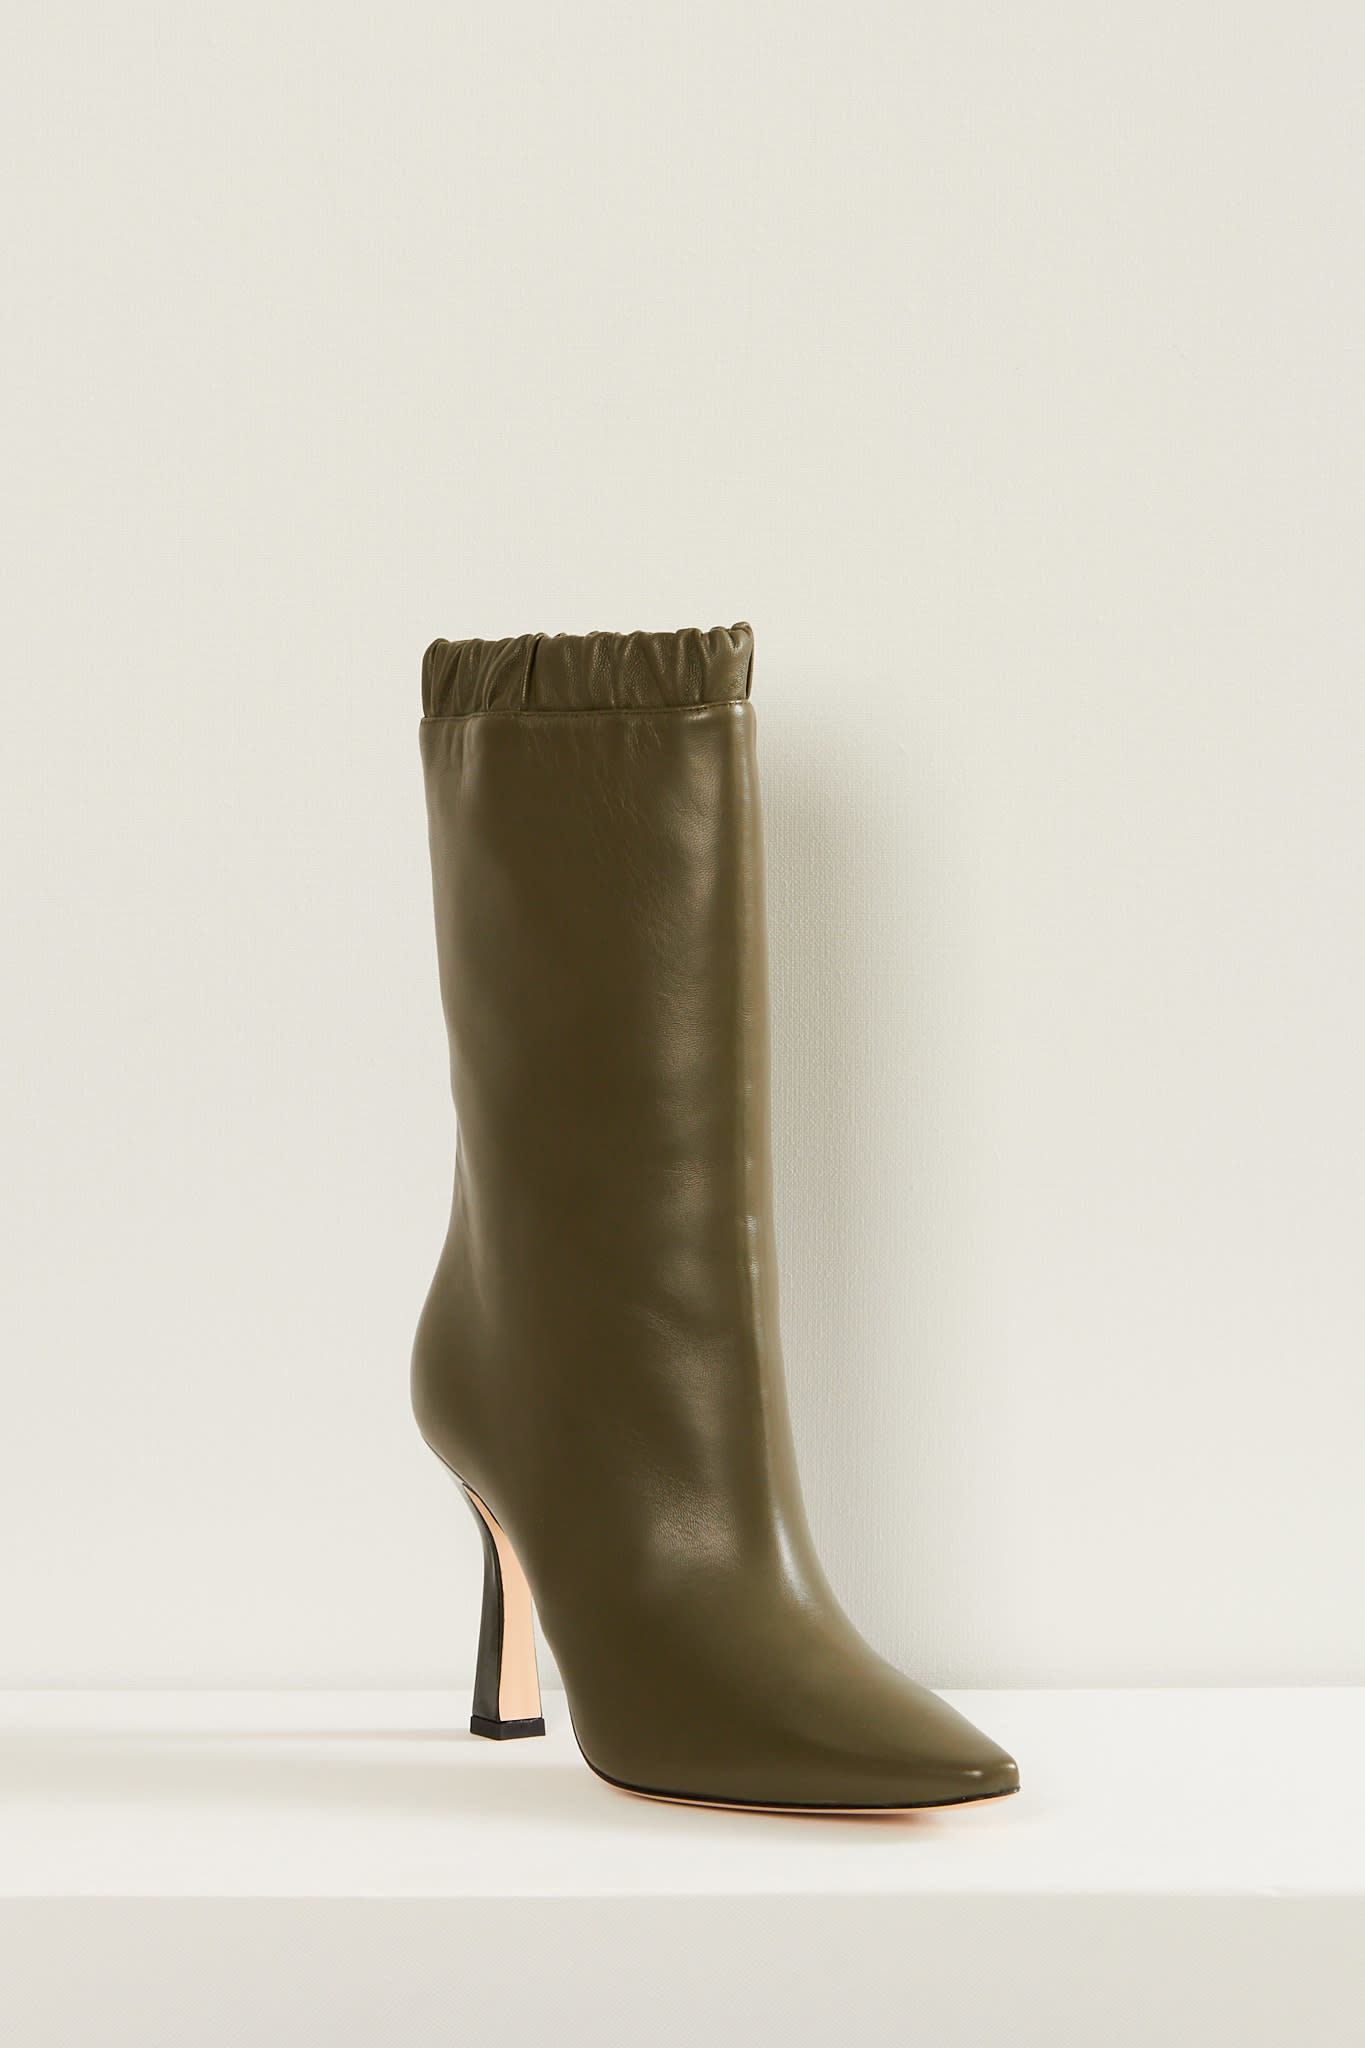 Wandler Lima slouch lambskin leather boots